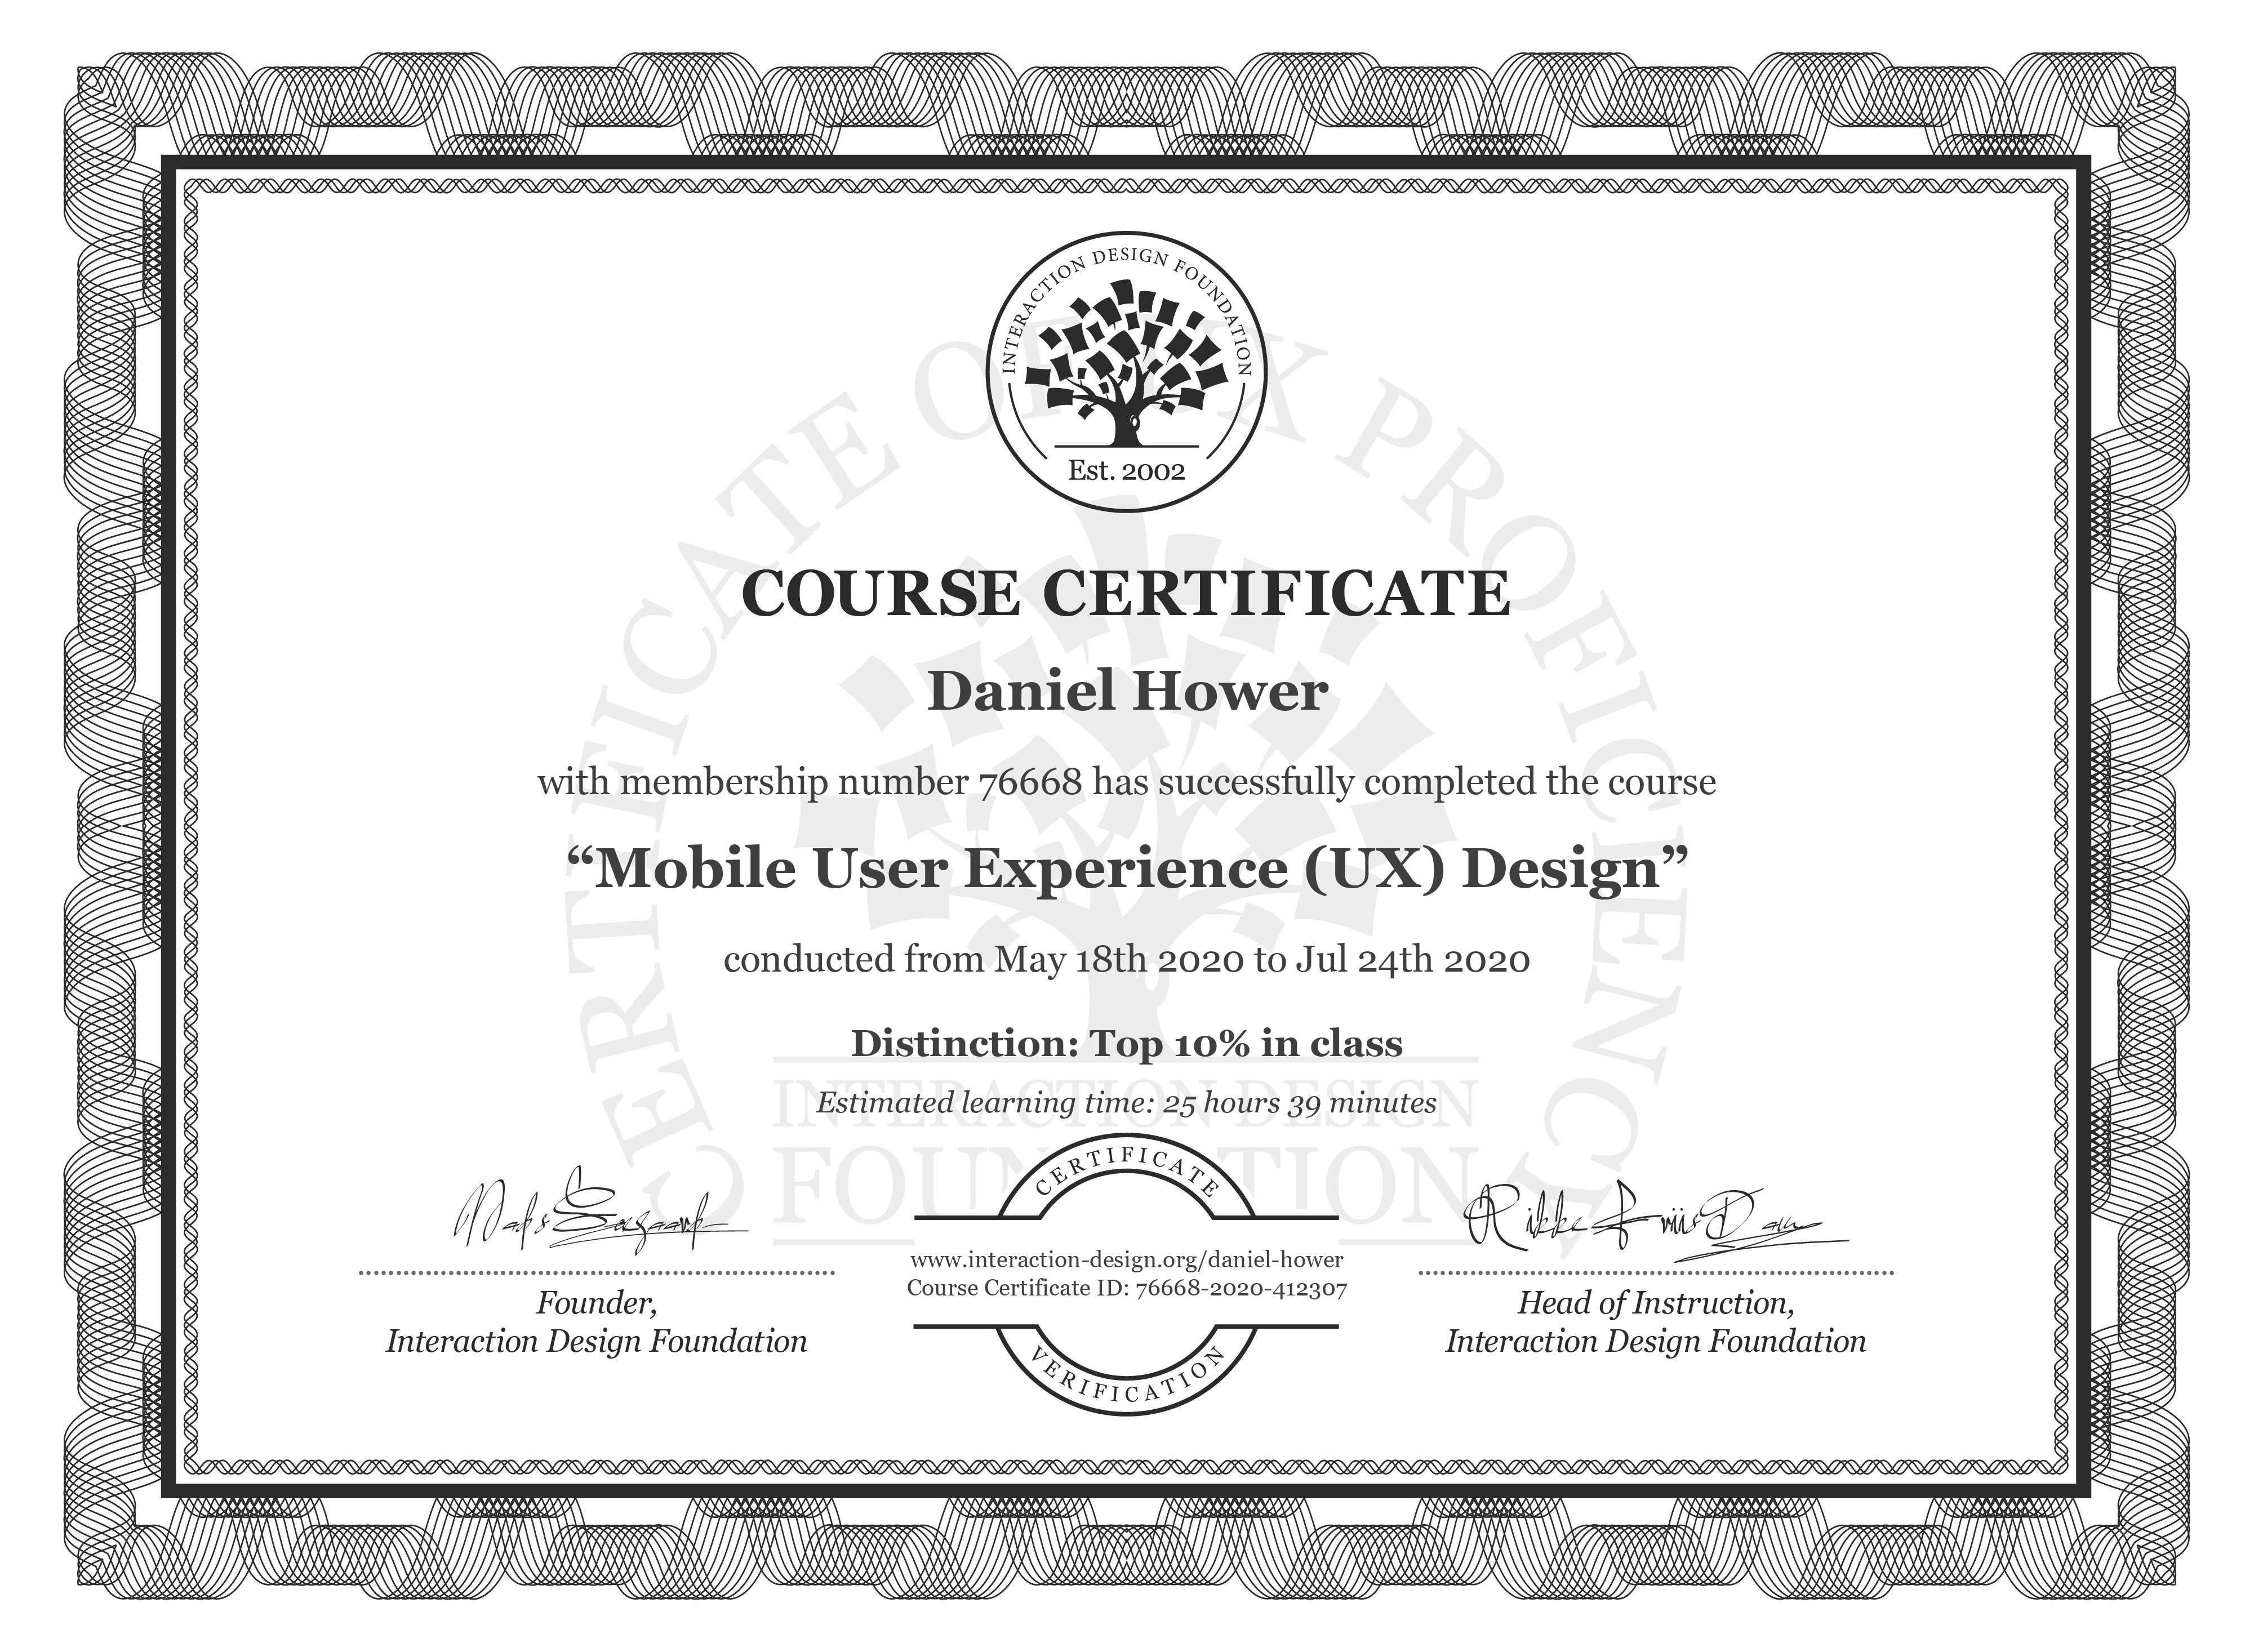 Daniel Hower's Course Certificate: Mobile User Experience (UX) Design